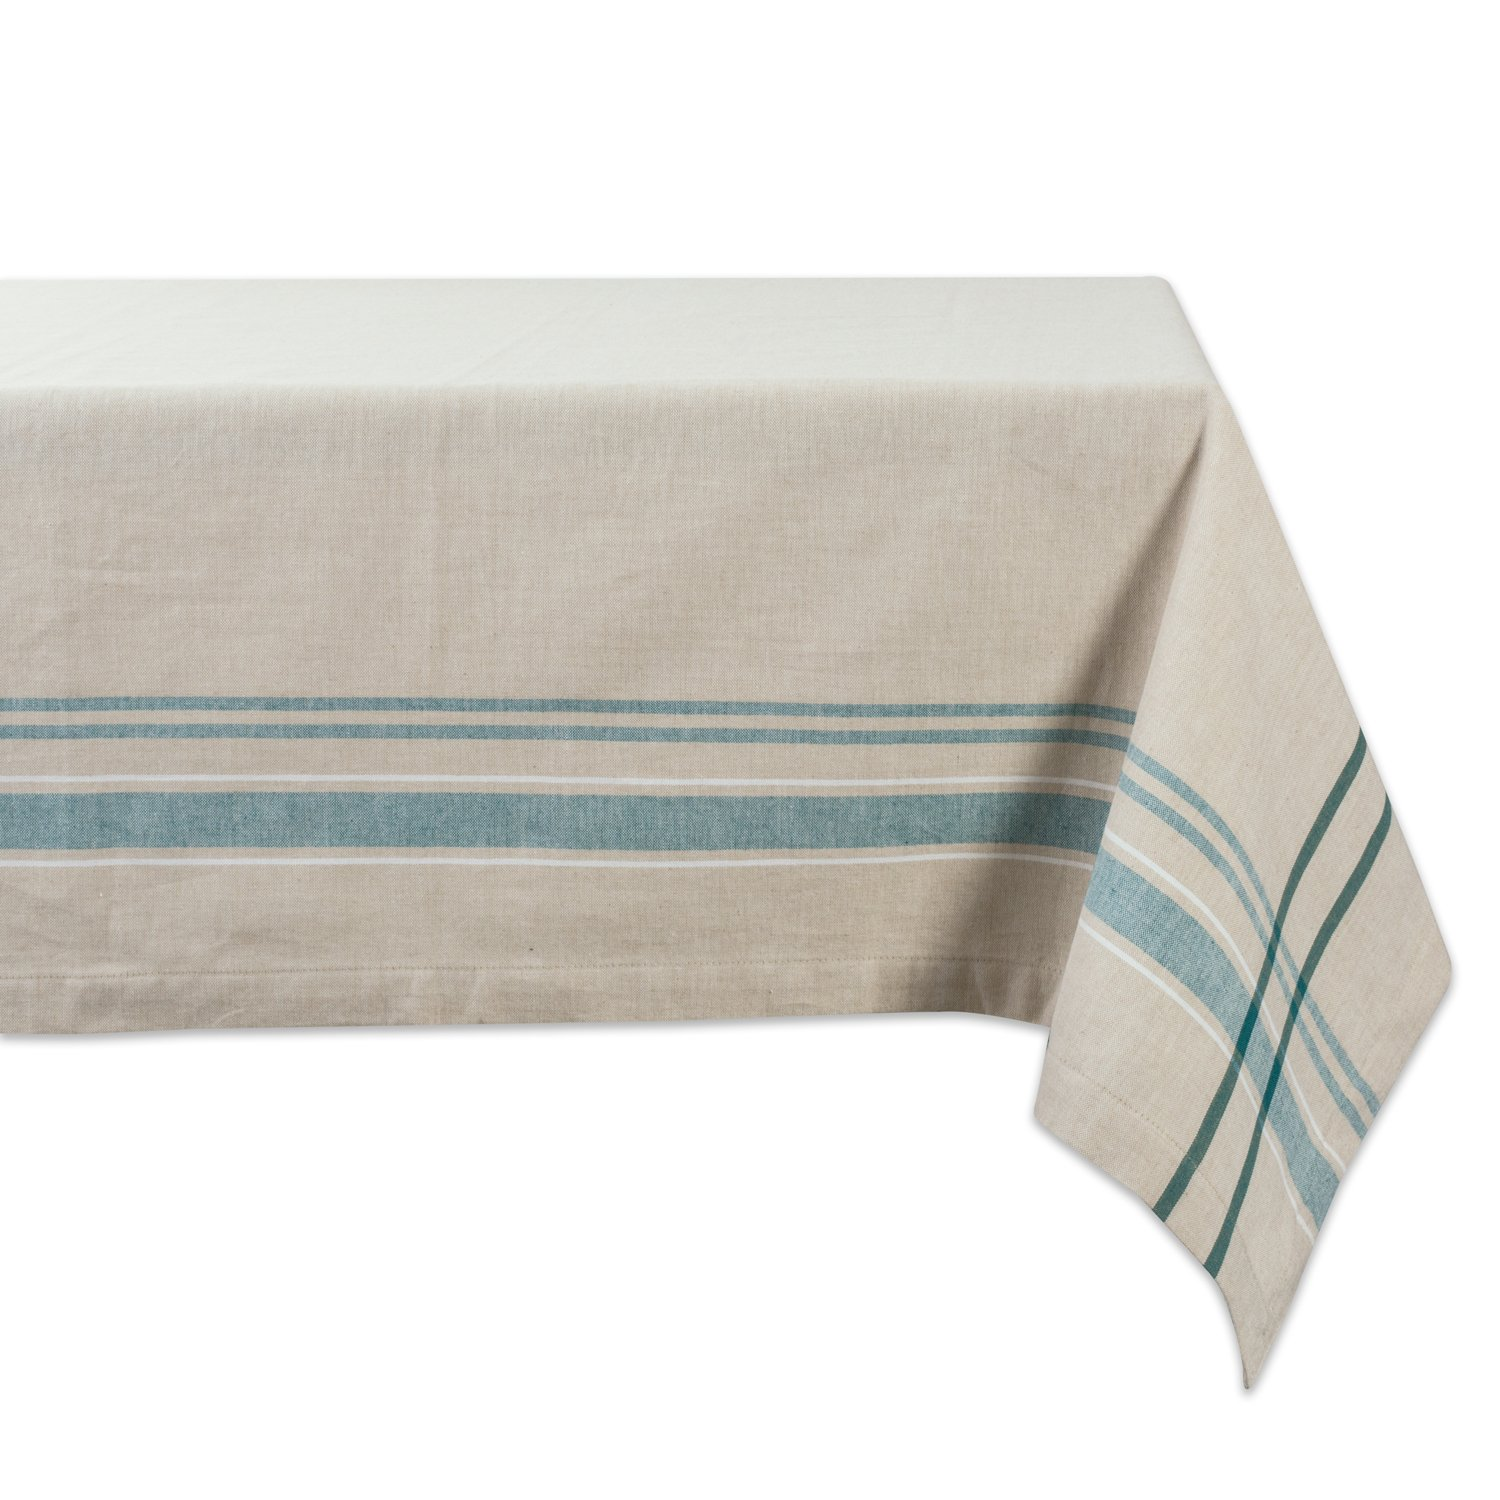 DII 100% Cotton, Machine Washable, Everyday French Stripe Kitchen Tablecloth for Dinner Parties, Summer & Outdoor Picnics - 60x84 Seats 6 to 8 People, Teal